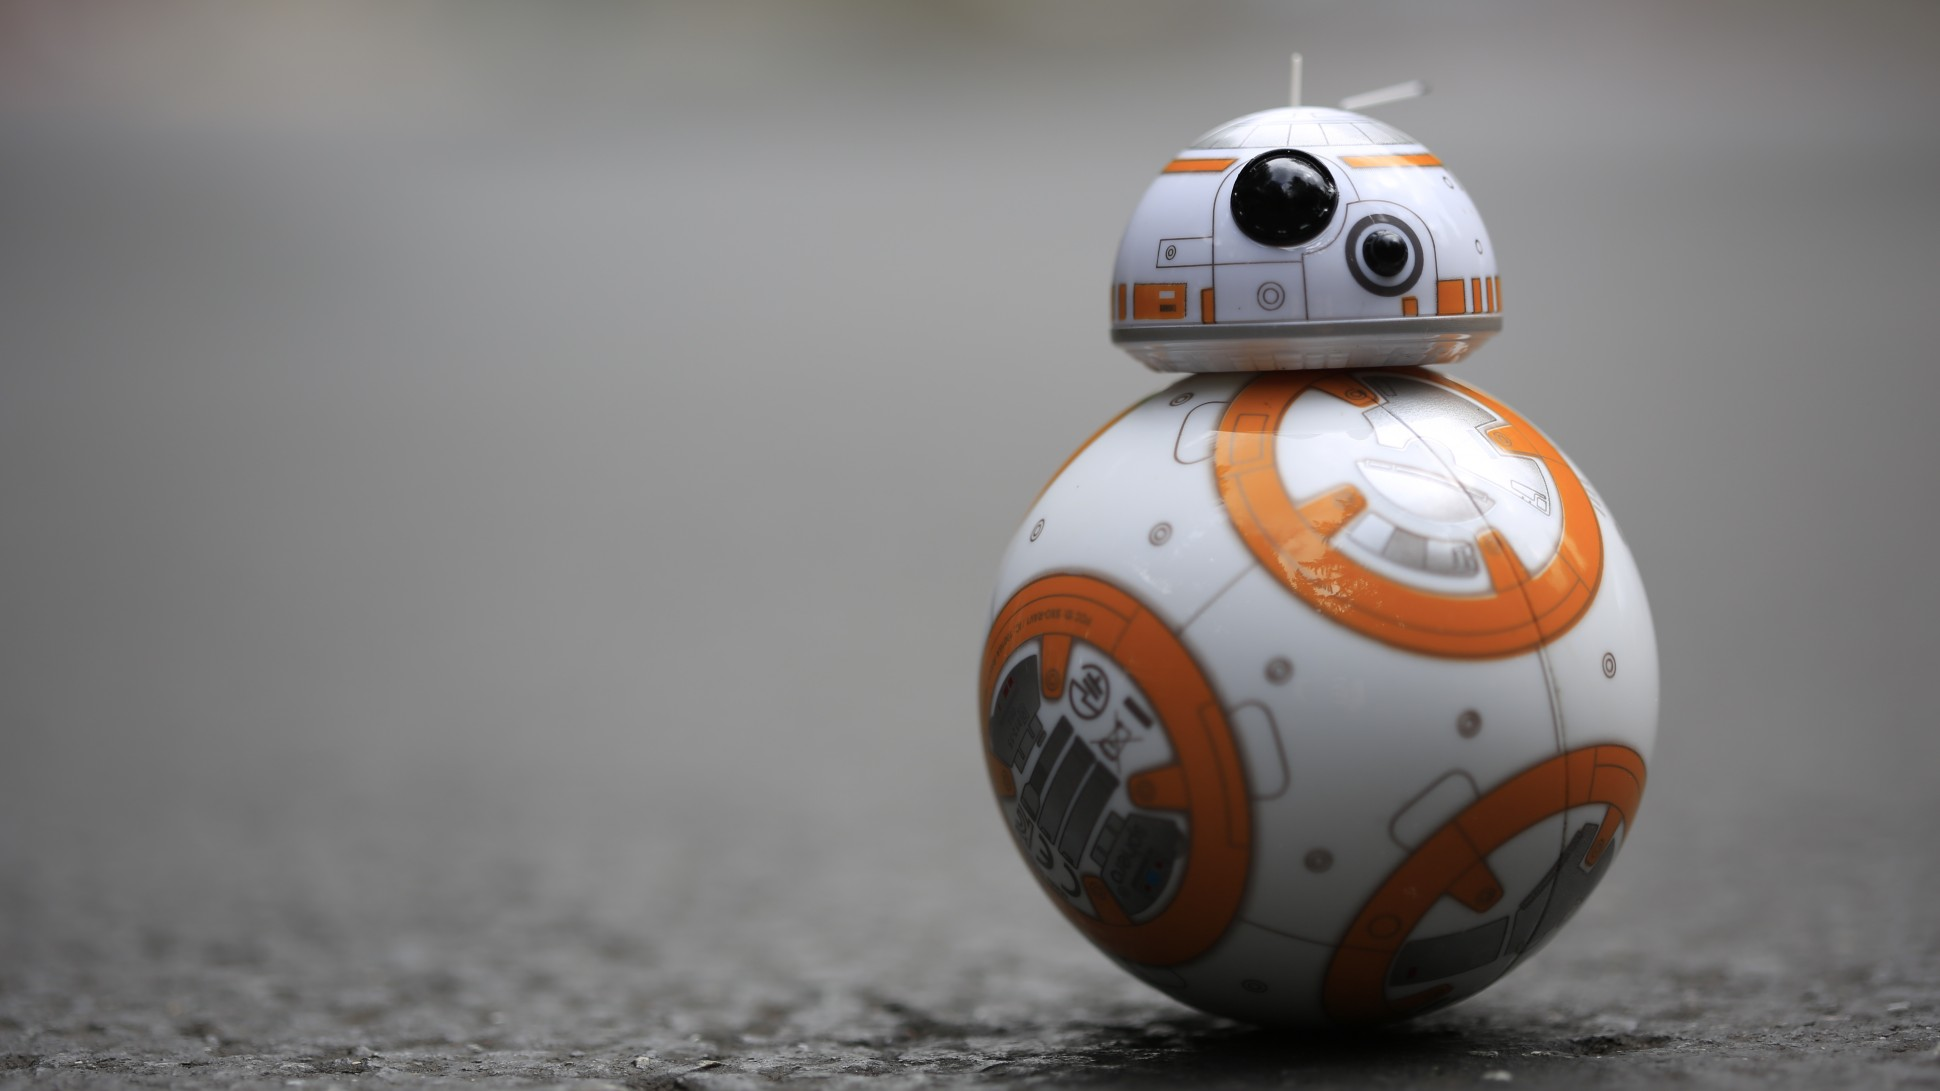 download Star Wars BB 8 device by Sphero brings the charming 1940x1091